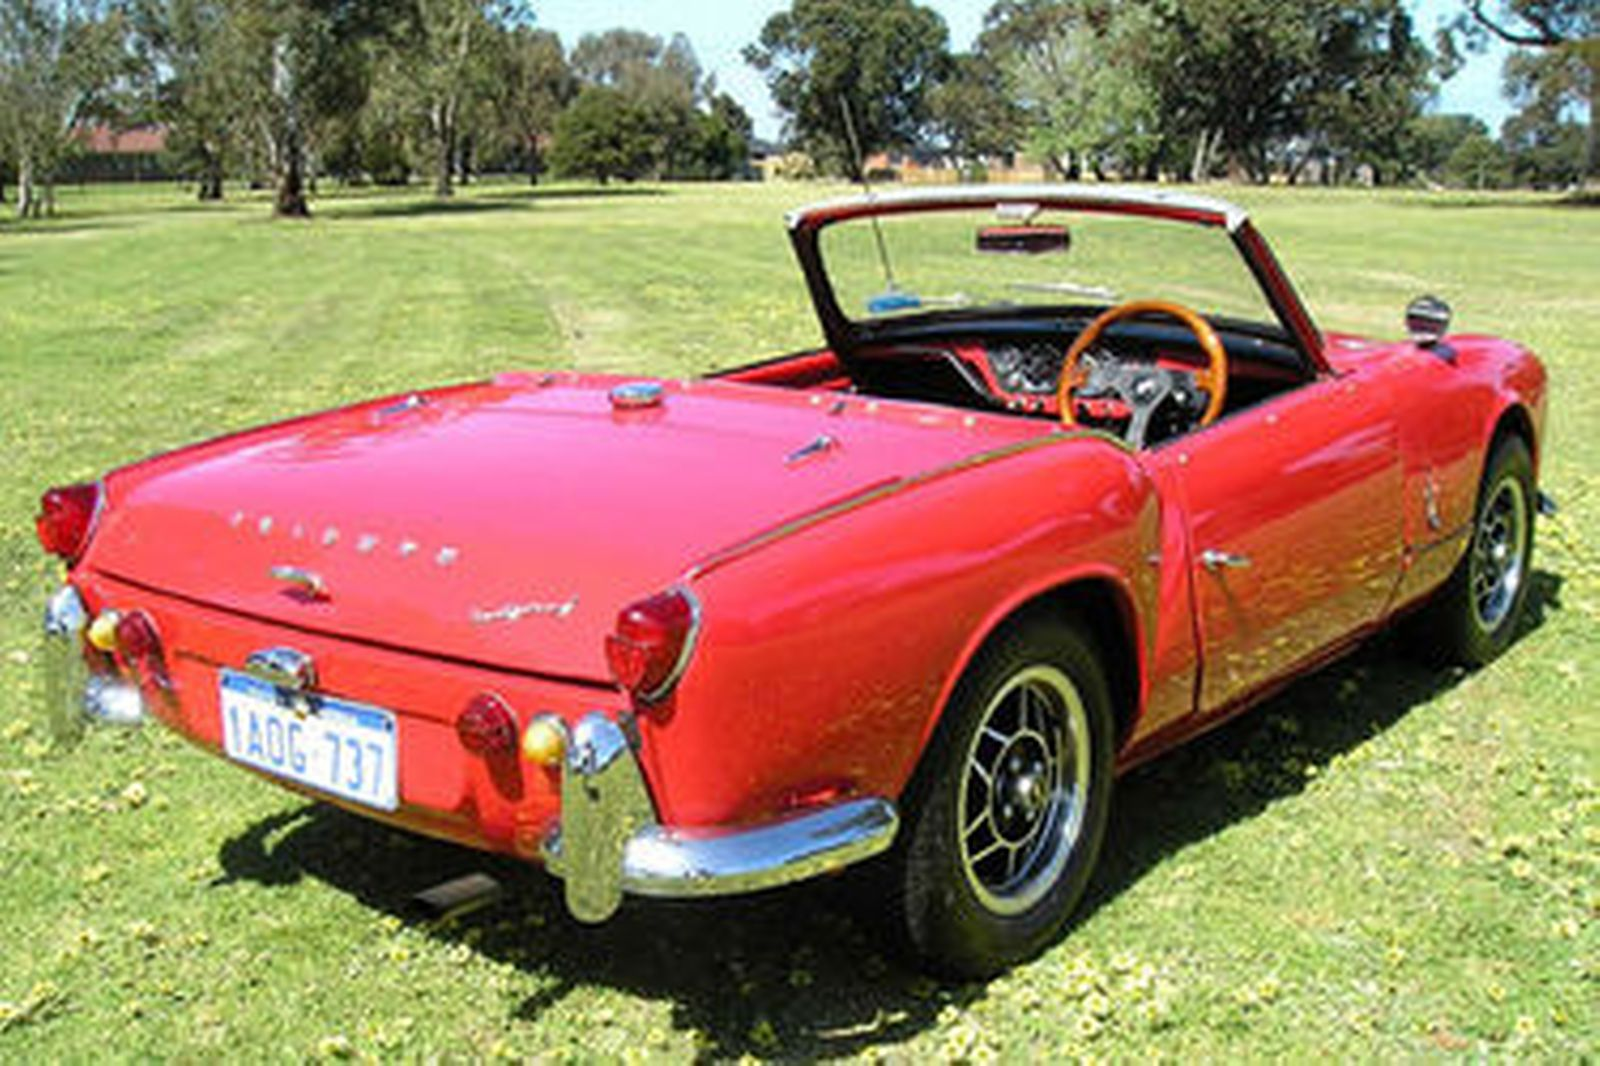 Sold  Triumph Spitfire Mk1 Roadster Auctions - Lot 1